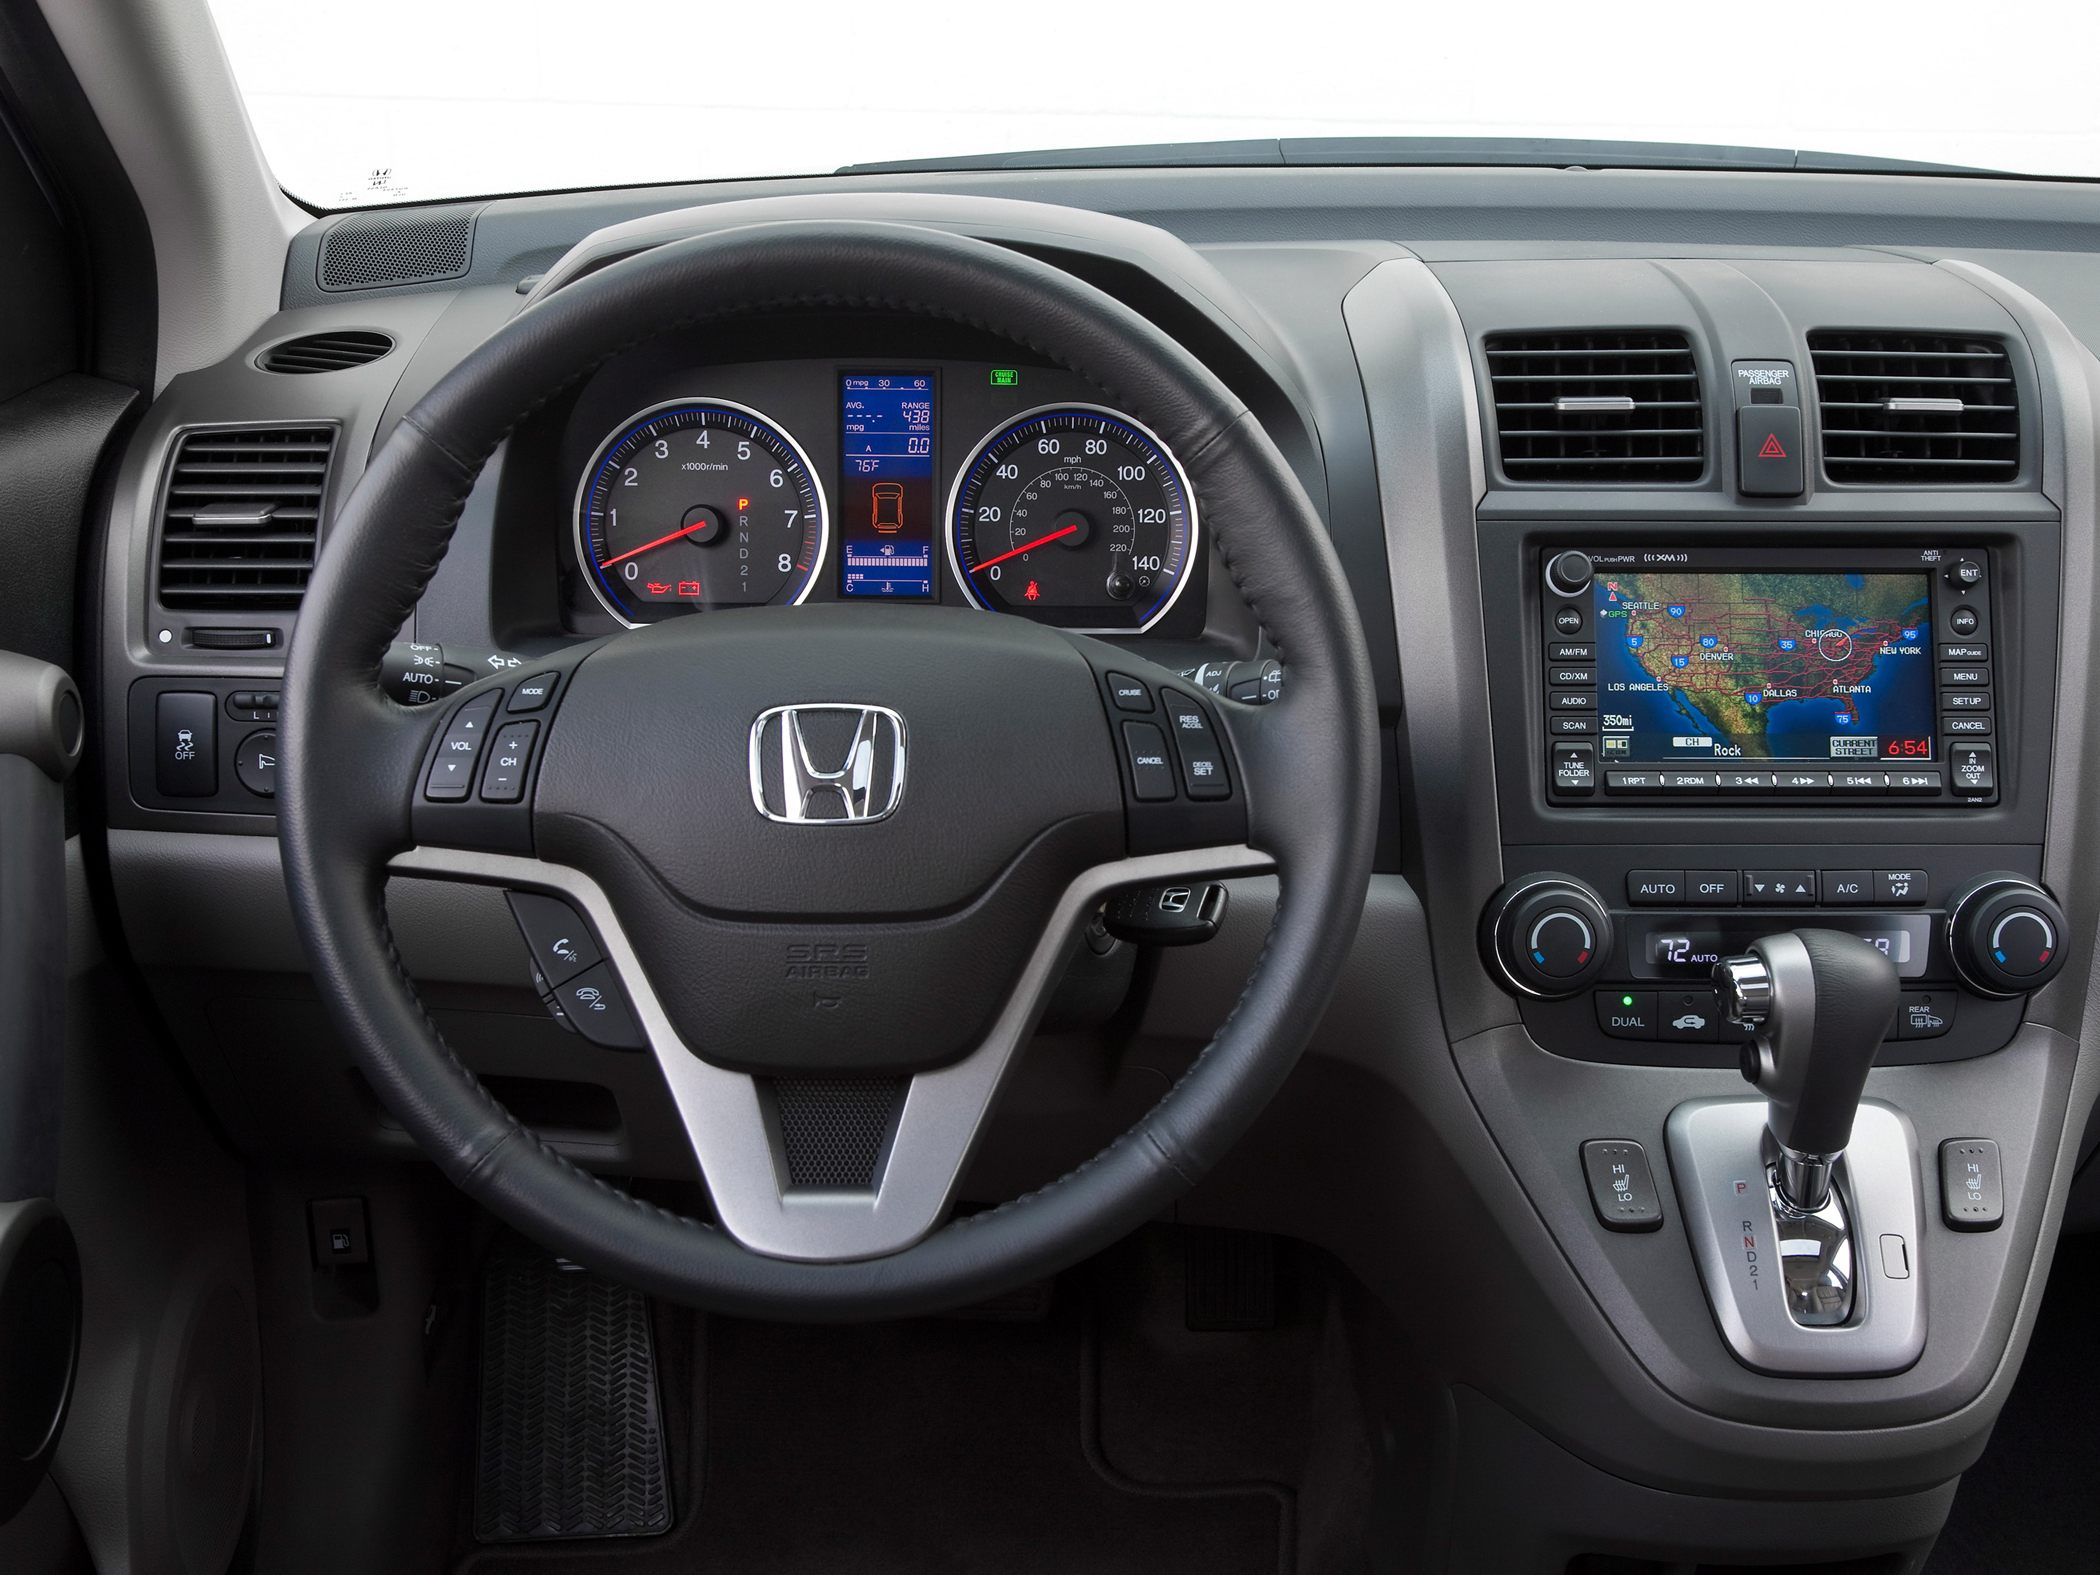 Pictures of honda cr-v